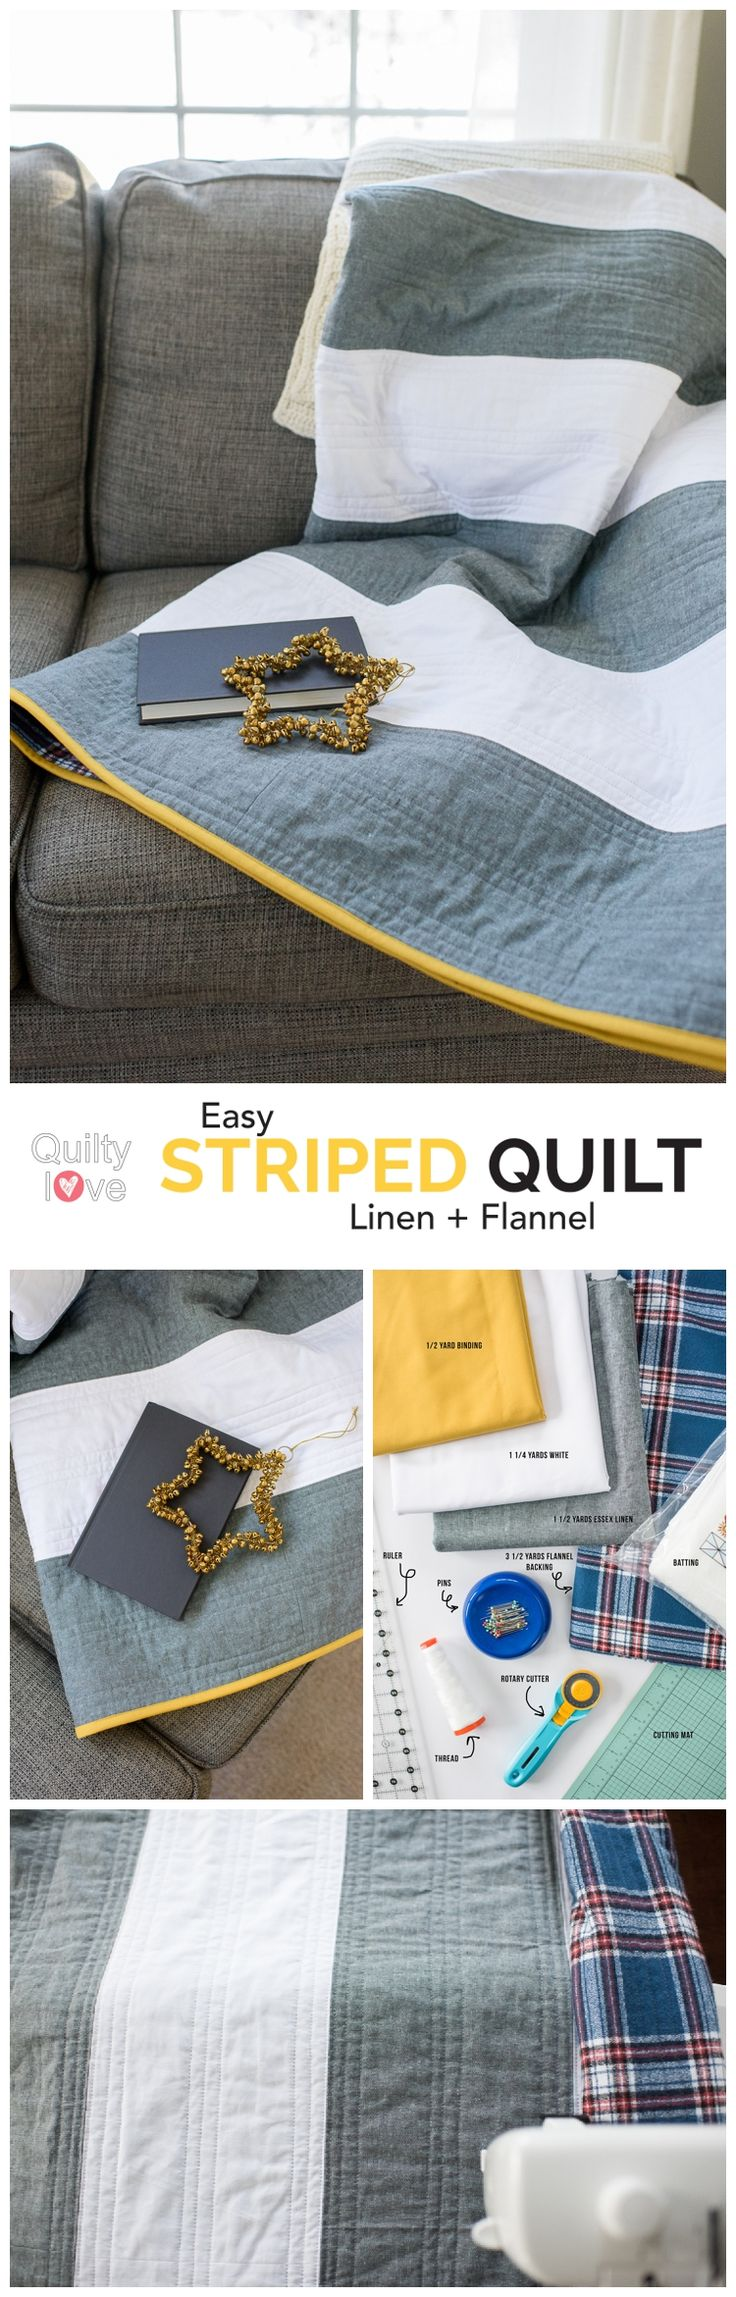 Sponsored post with fabric.com.  Free striped quilt tutorial by Emily of   Quiltylove.com.  Make up this quick and easy free quilt pattern using   Essex Linen and Robert Kaufman flannel.  Easy beginner friendly free   quilt pattern.  Affiliate link.